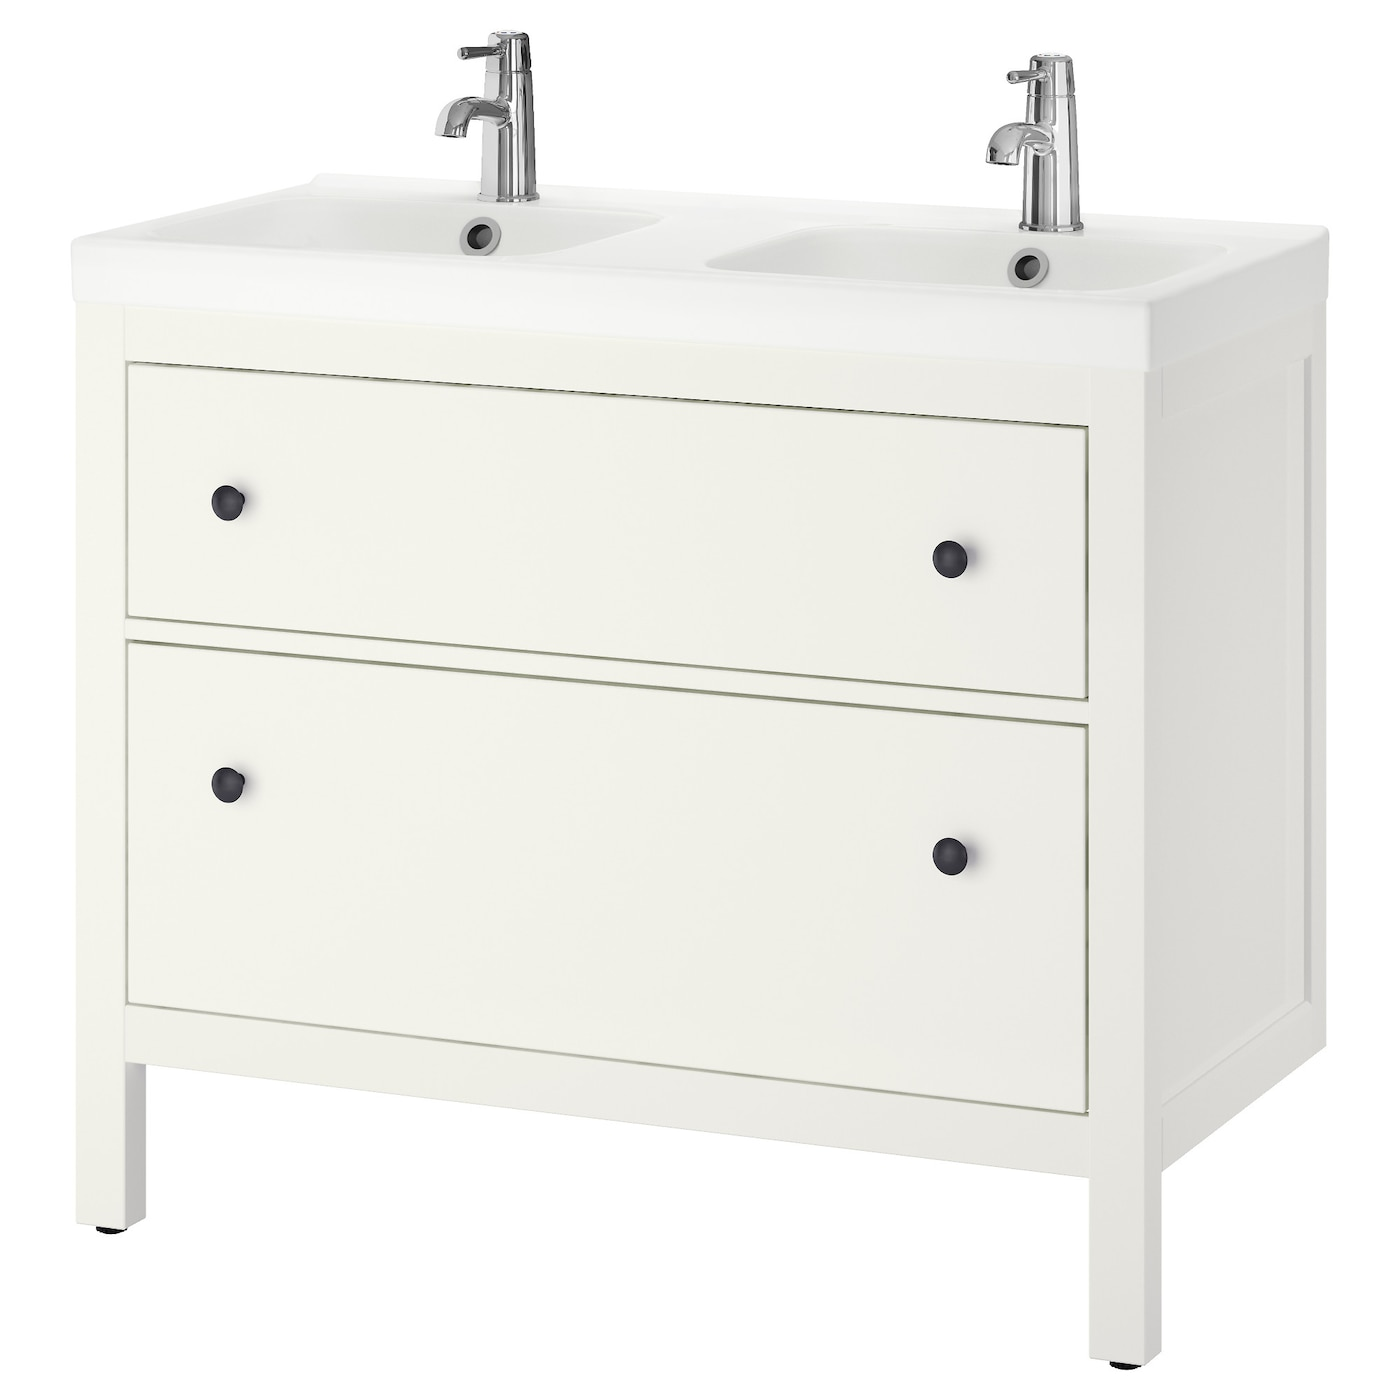 Odensvik hemnes wash stand with 2 drawers white 100x49x89 cm ikea - Ikea meuble sous vasque ...